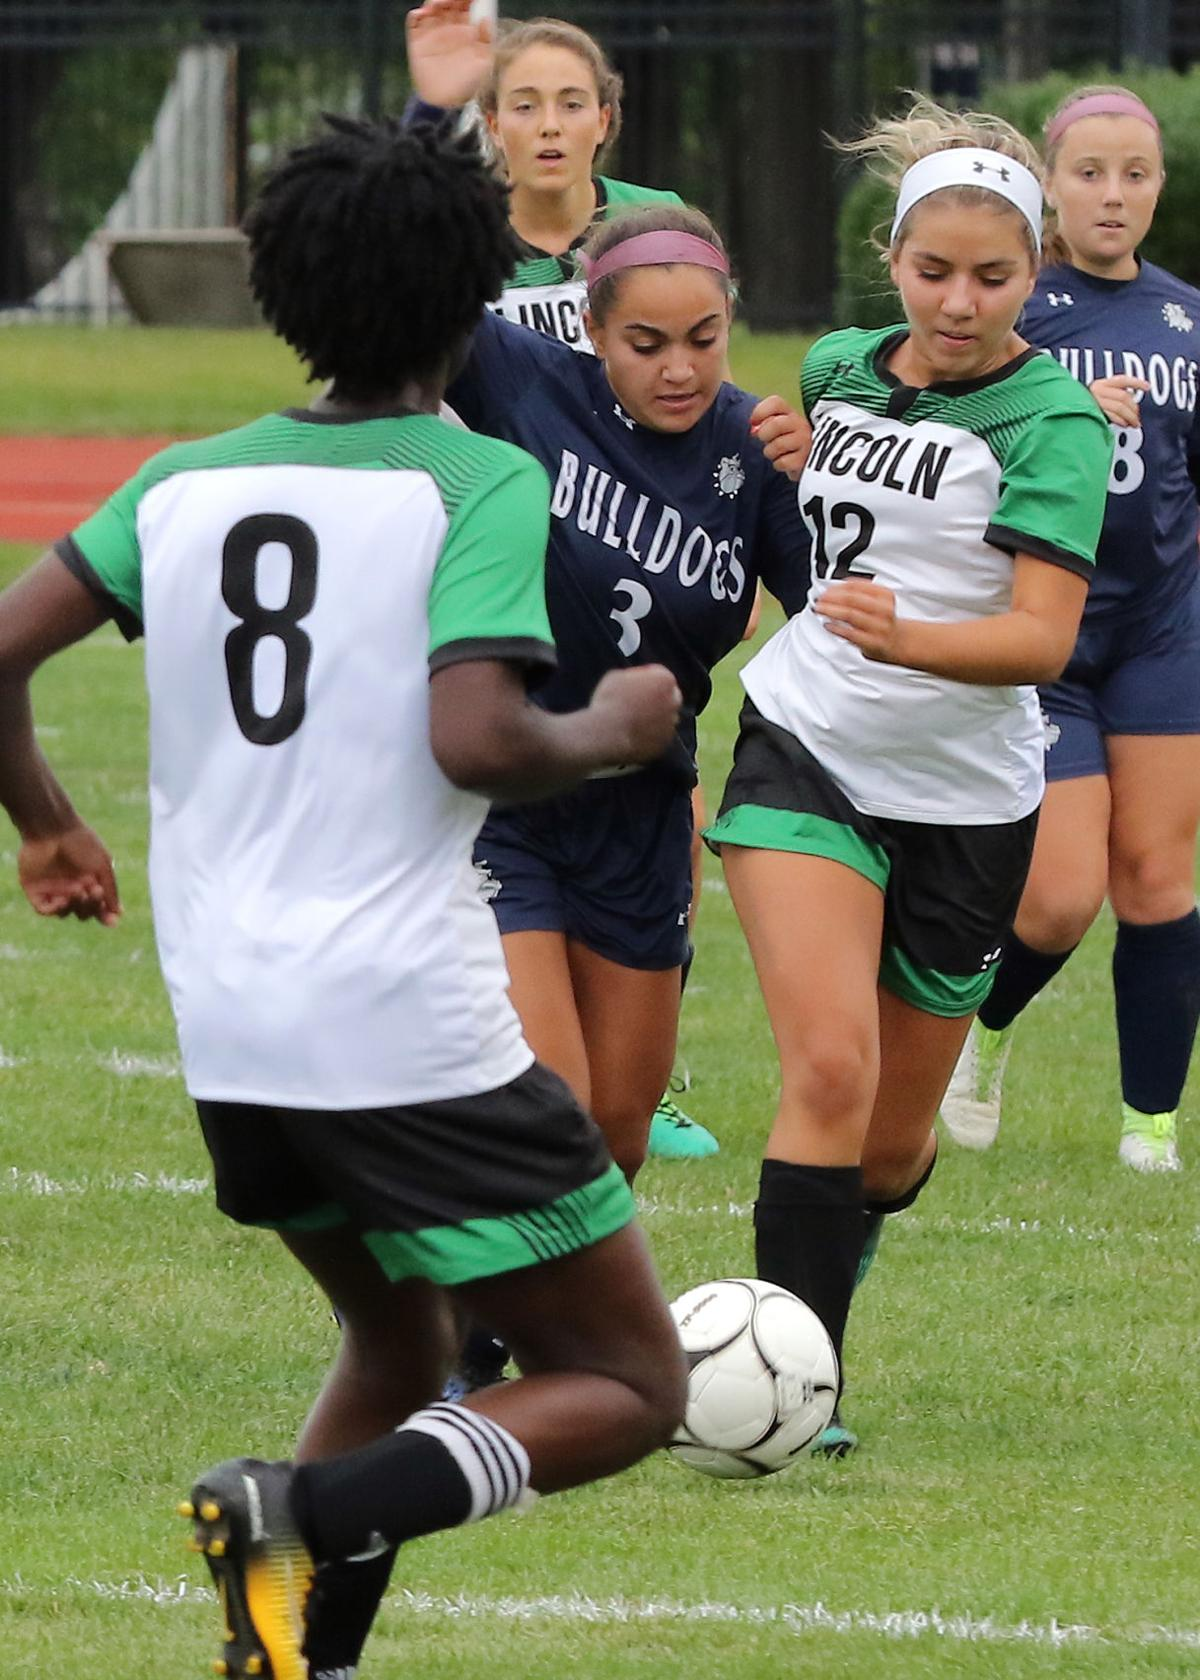 Westerly's Diana Turano (3) vies for control of the ball against Lincoln's Tayla Salome (8) and Julia Perry (12) in the Westerly vs Lincoln girls' varsity soccer game played Friday afternoon, September 6th, 2019 at Westerly High School's Augeri Field. | Jackie L. Turner, Special to The Sun.